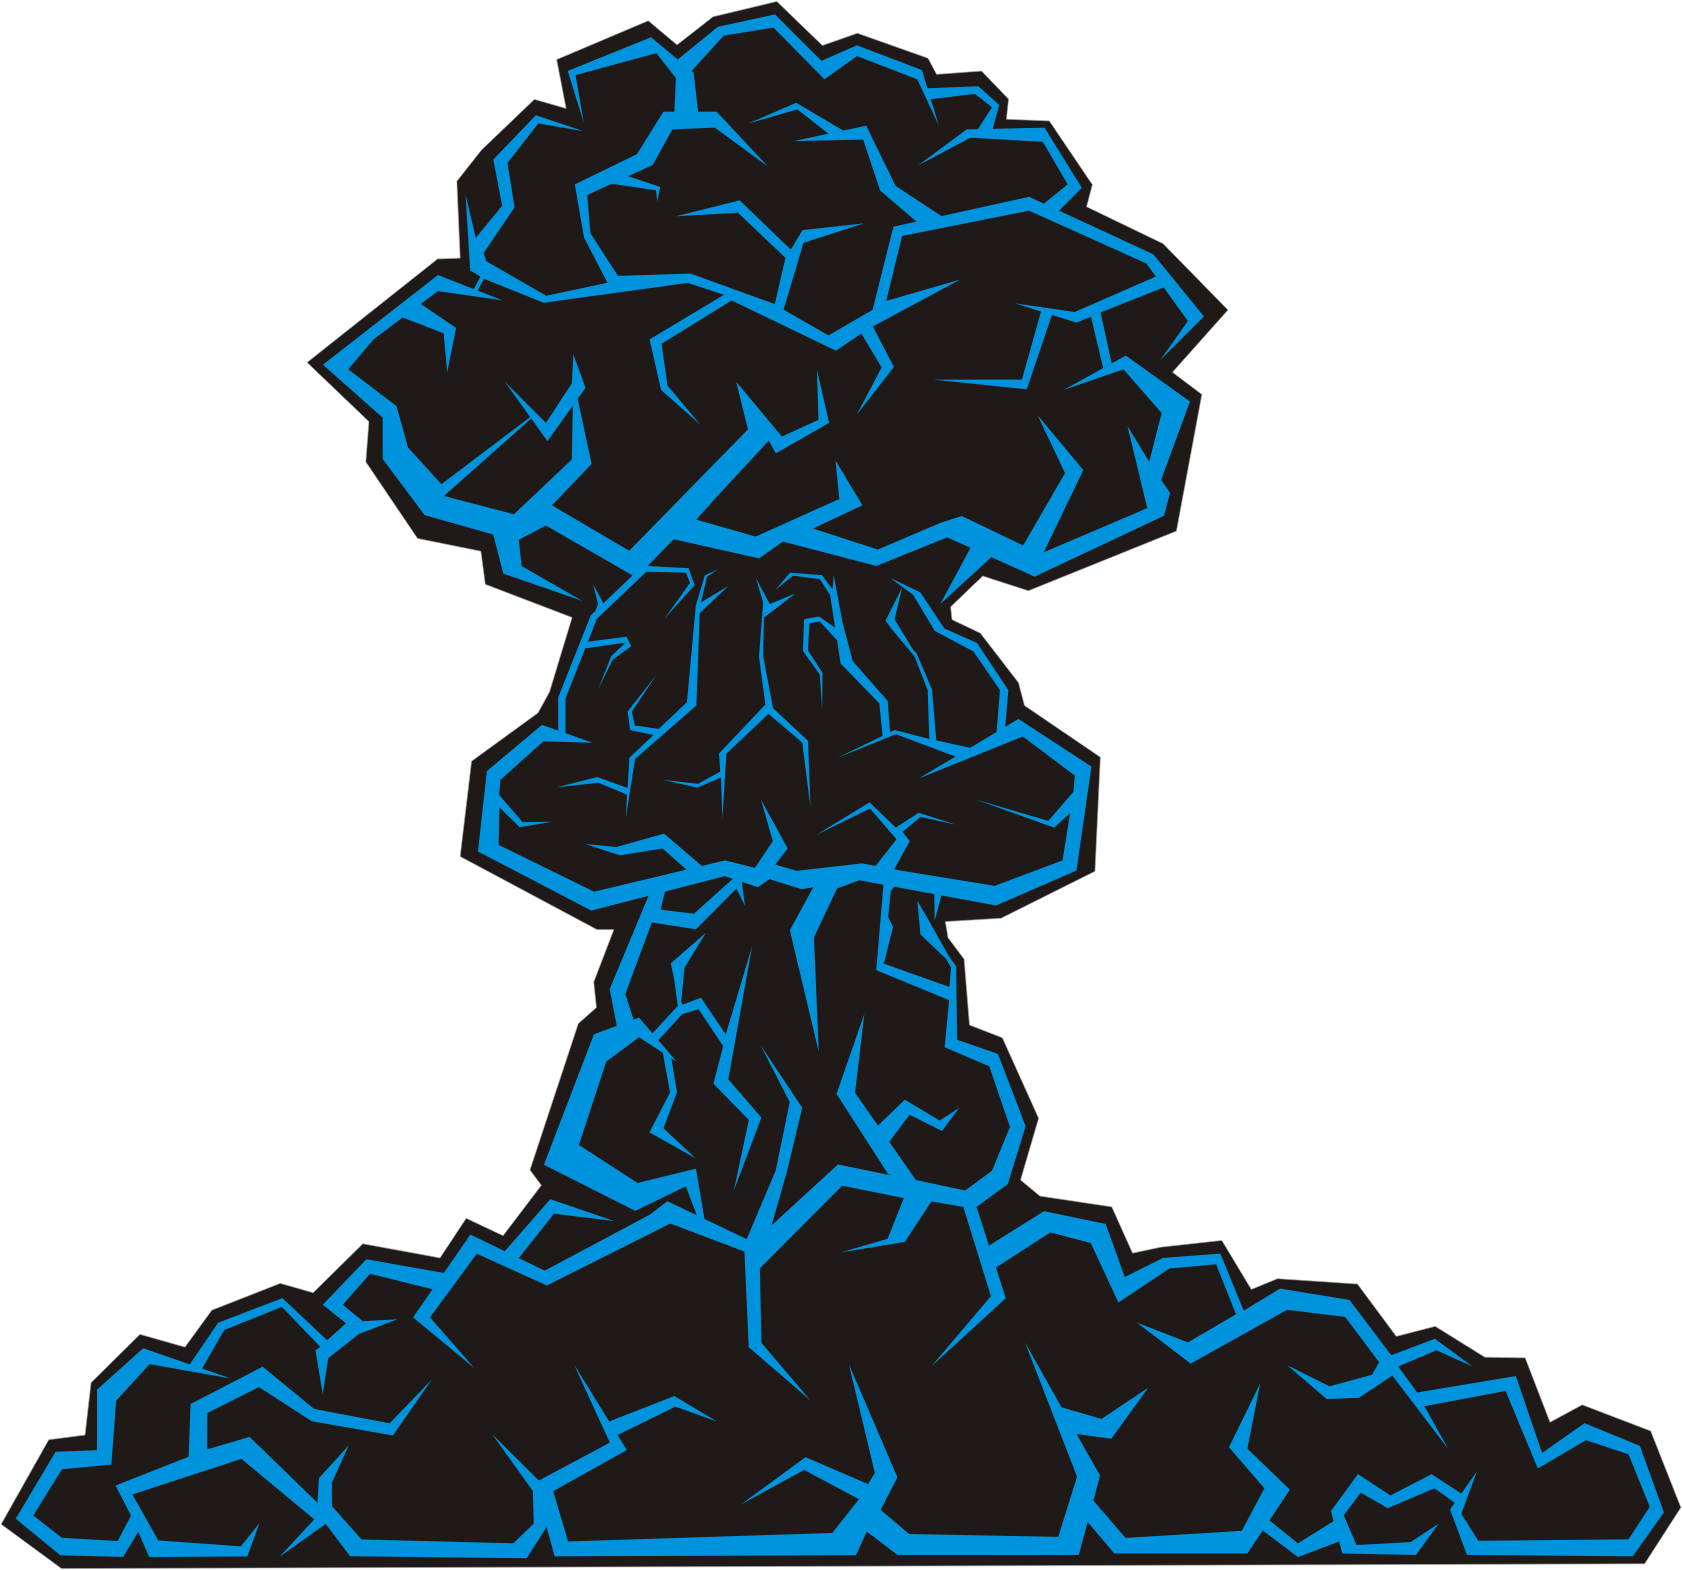 vector freeuse download Mushroom big image png. Cloud clipart atomic bomb.